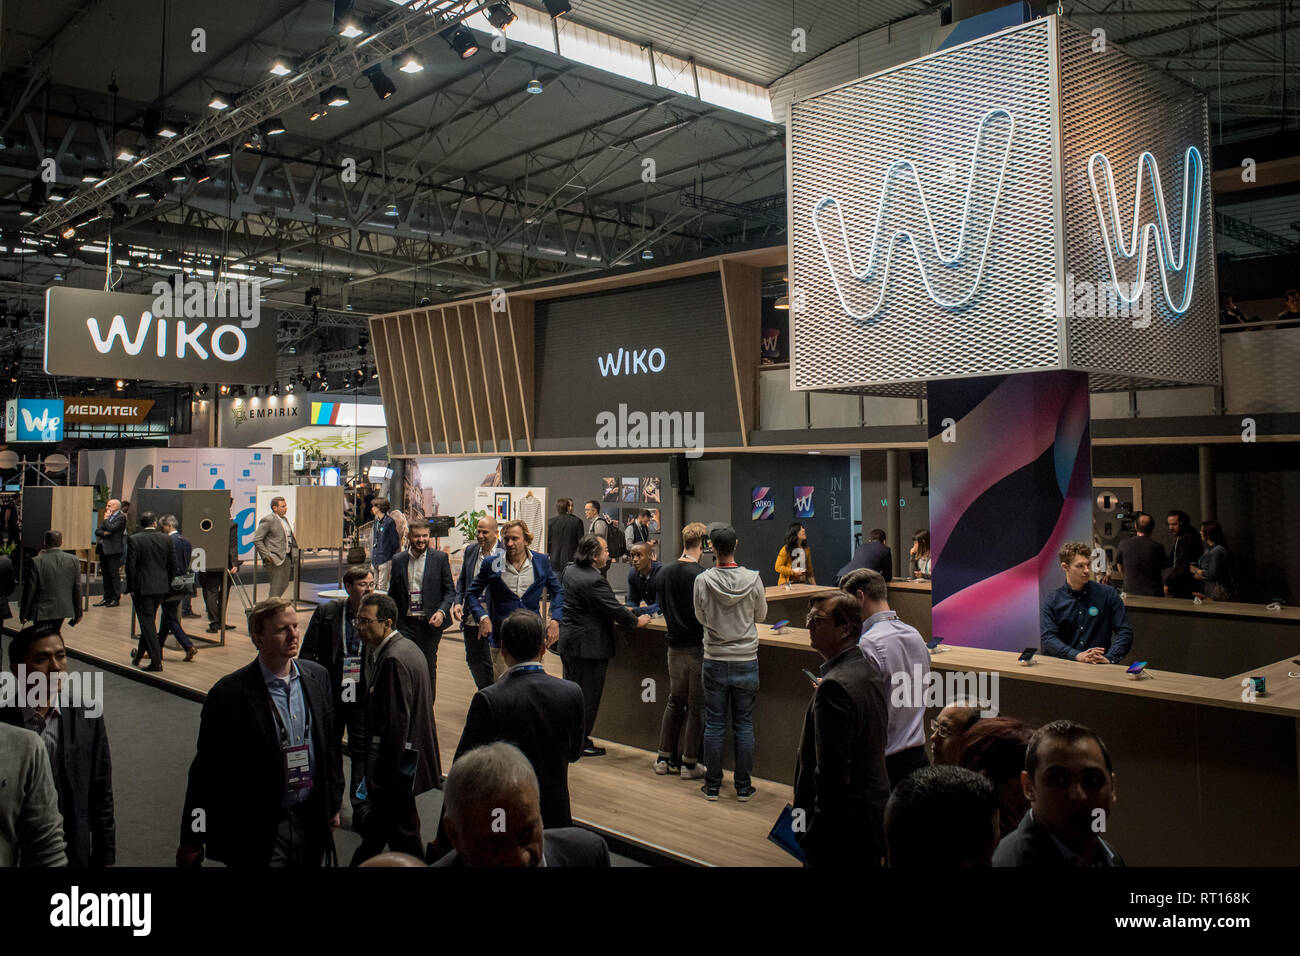 Barcelona, Spain. 26th Feb 2019. February 26, 2019 - Barcelona, Catalonia, Spain -  WIKO  pavilion during the  GSMA Mobile World Congress 2019 in Barcelona, the world's most important event on mobile devices communications bringing together the leading companies and the latest developments in the sector. Credit:  Jordi Boixareu/Alamy Live News Stock Photo